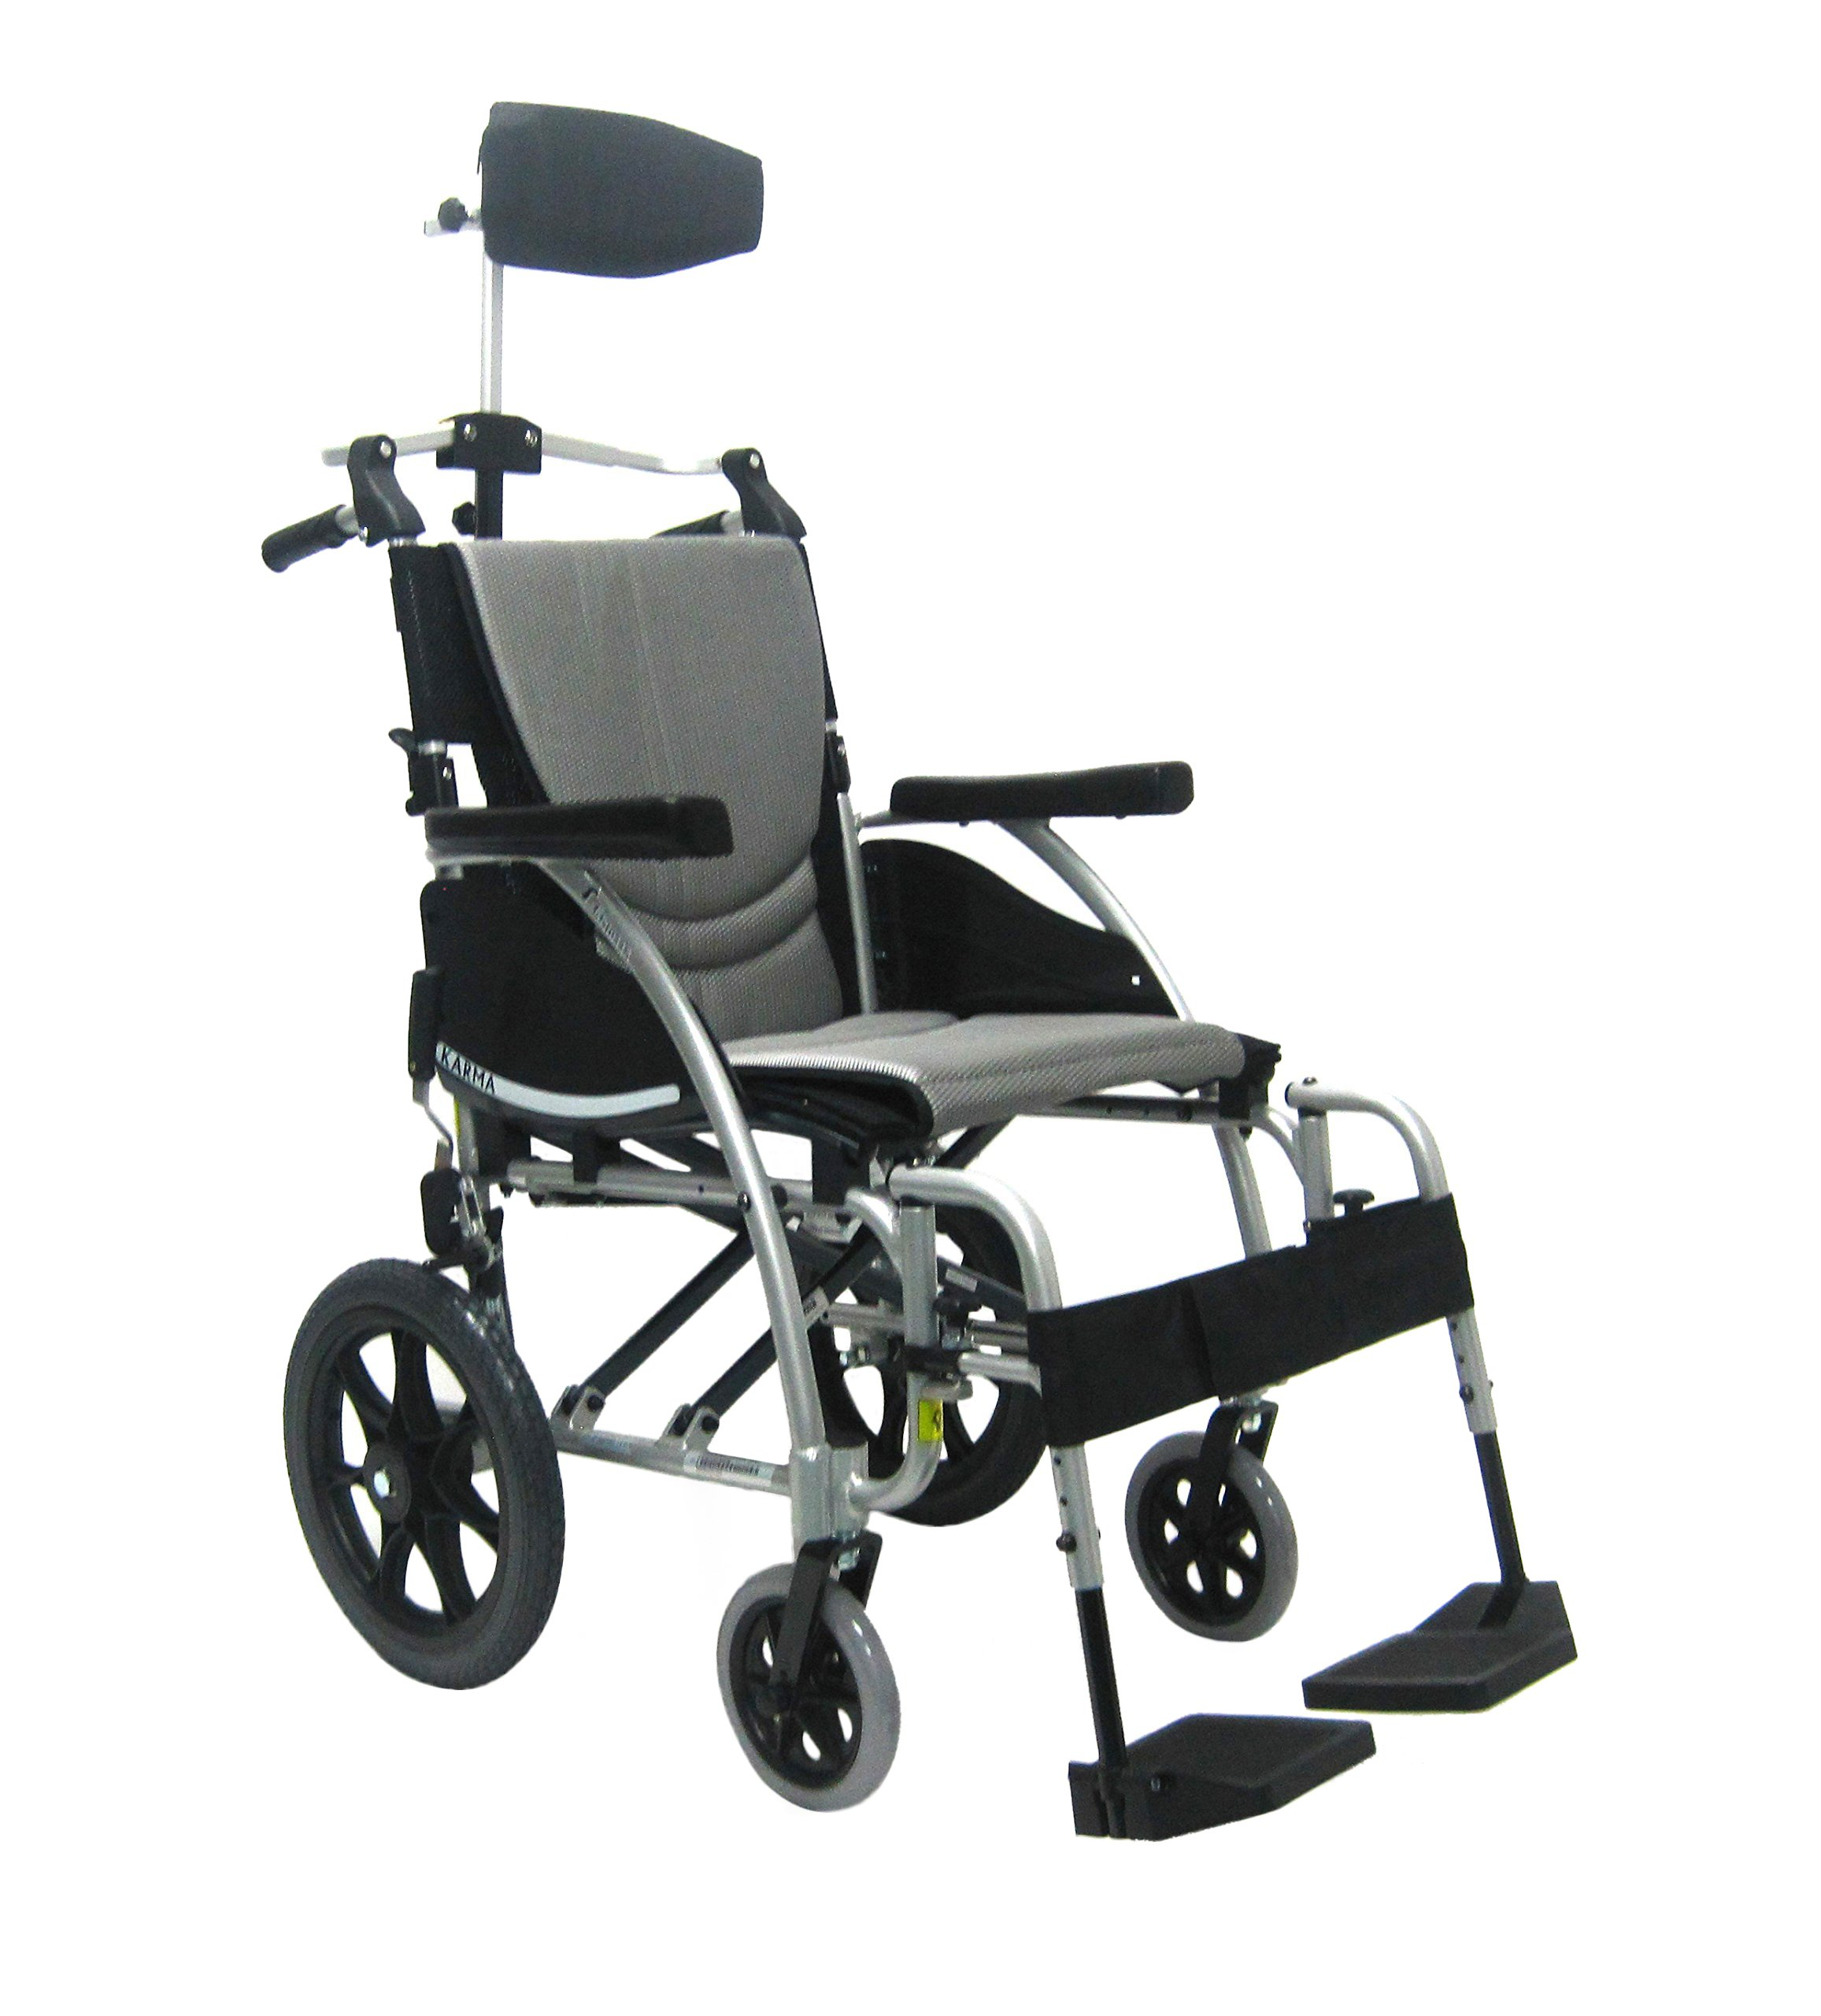 Karman Healthcare 22 Pounds S-115 Transport Silver with Headrest, Pearl Silver, 22 Pound